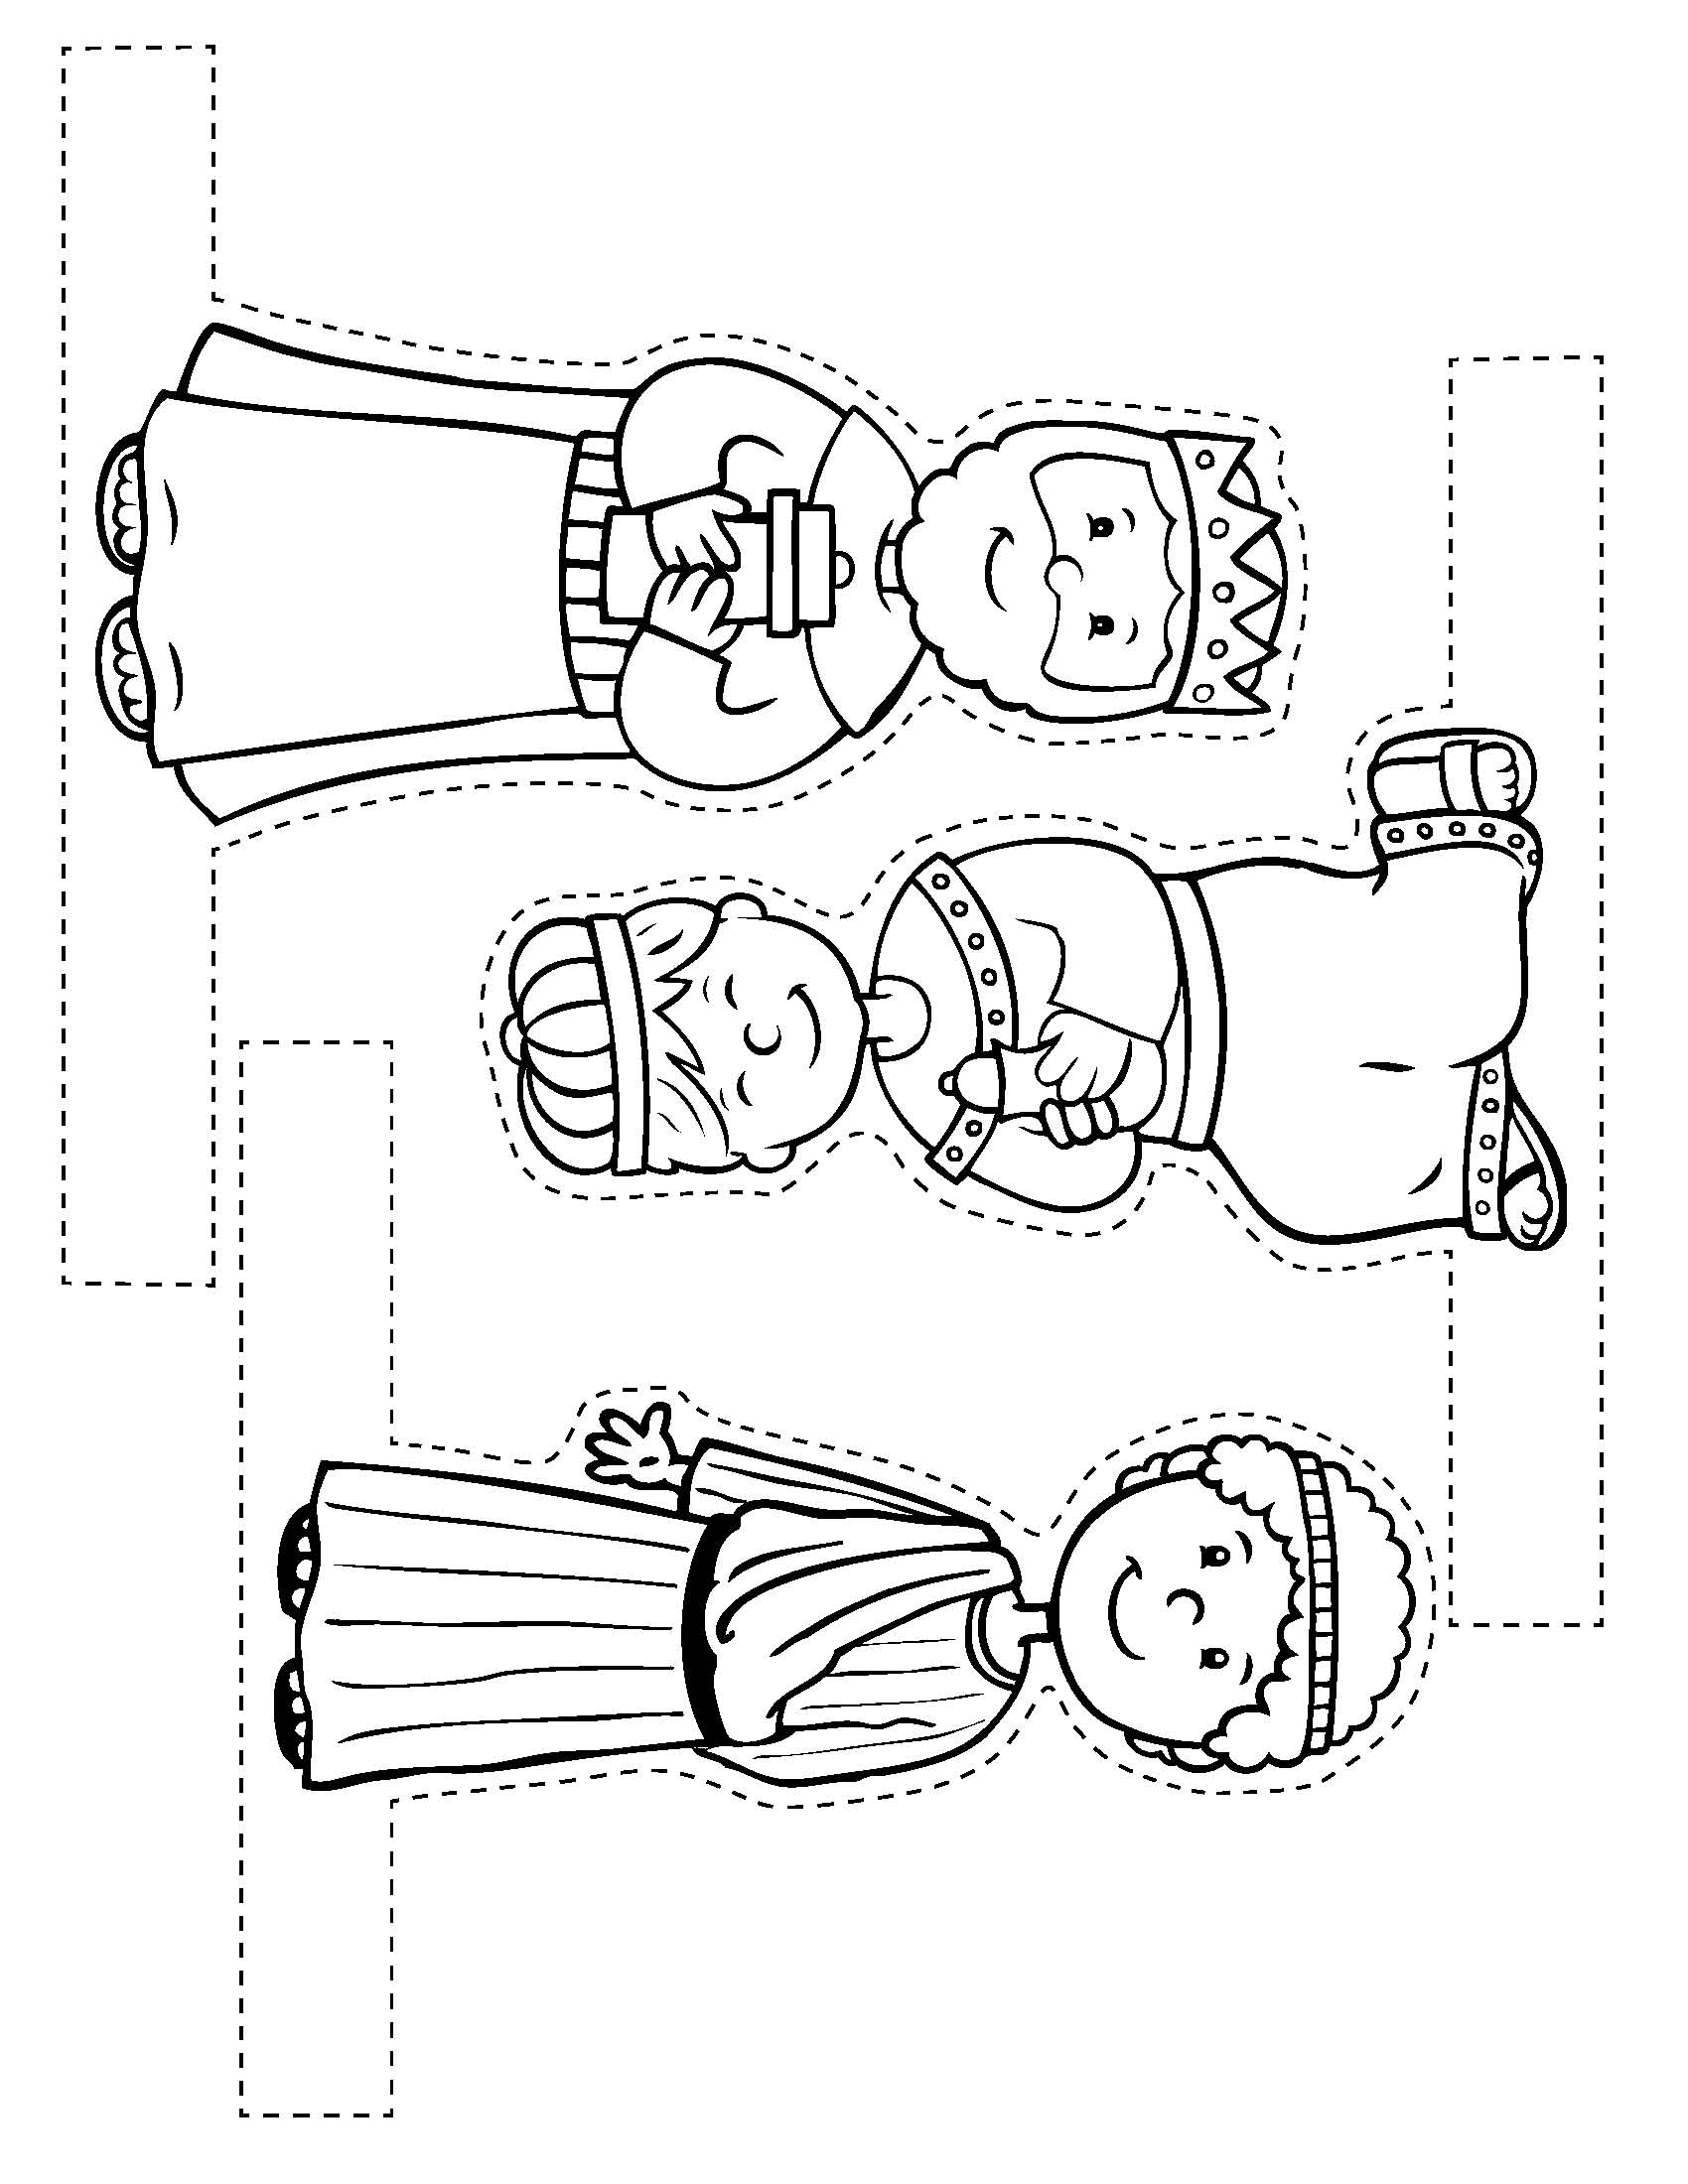 paper nativity scene cut out christmas story coloring pages several good versions in cut scene out nativity paper